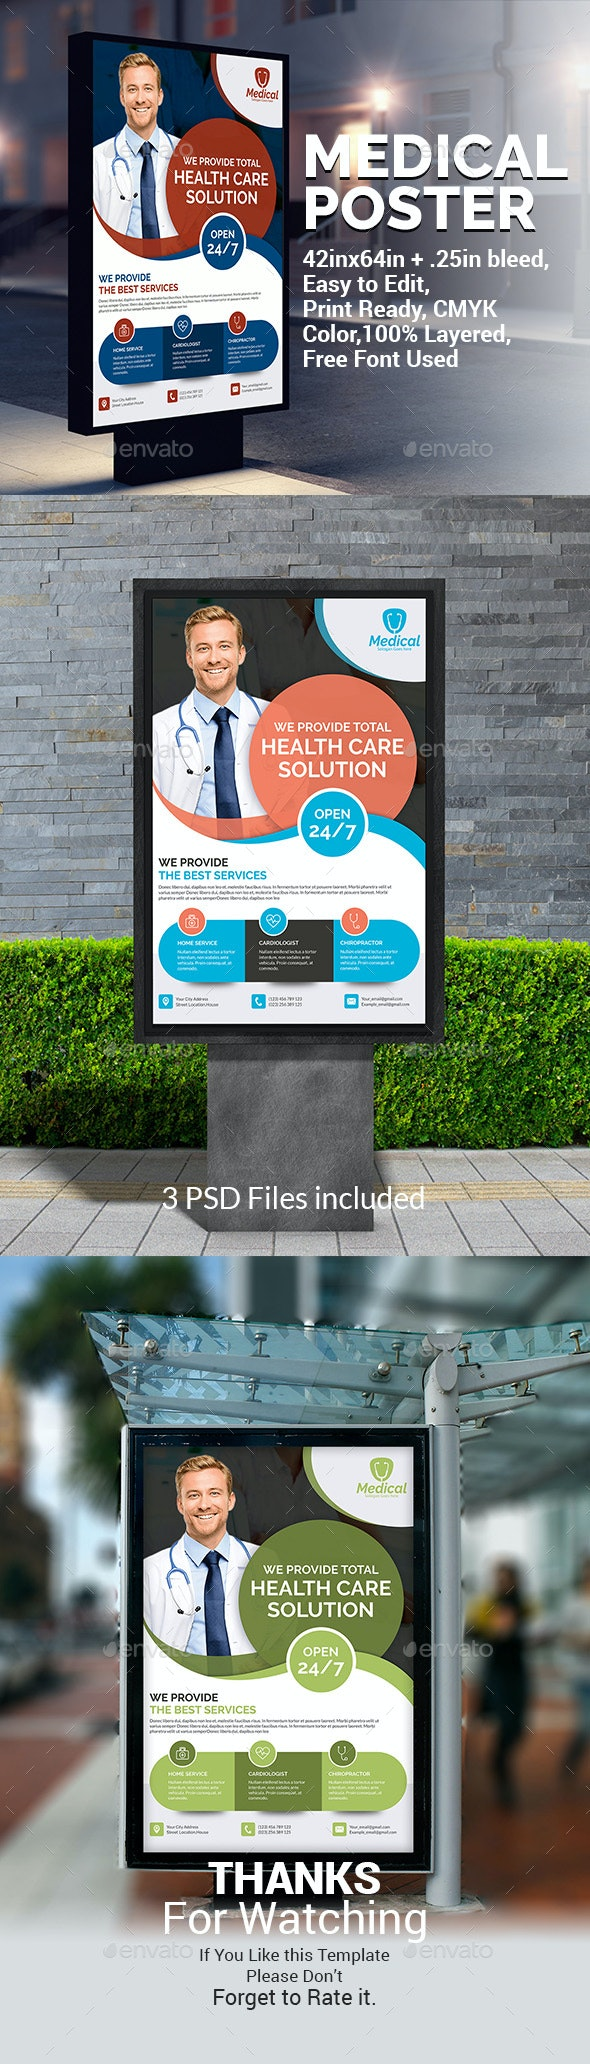 Medical Poster Template - Signage Print Templates